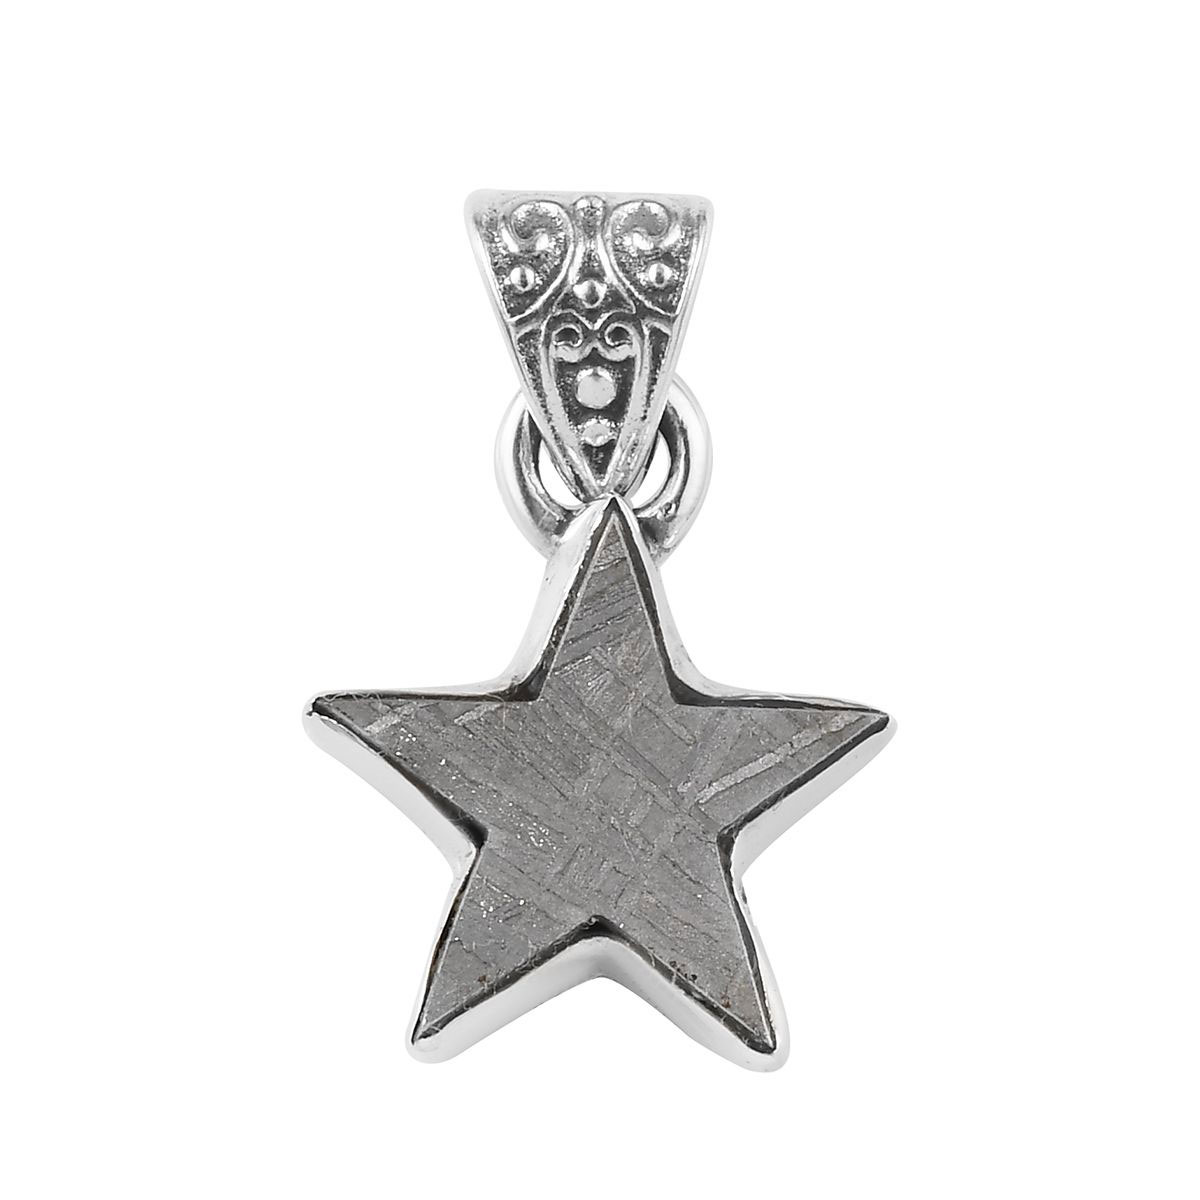 Jewels Obsession Moon /& Star Pendant Sterling Silver 925 Moon /& Star Pendant 26 mm